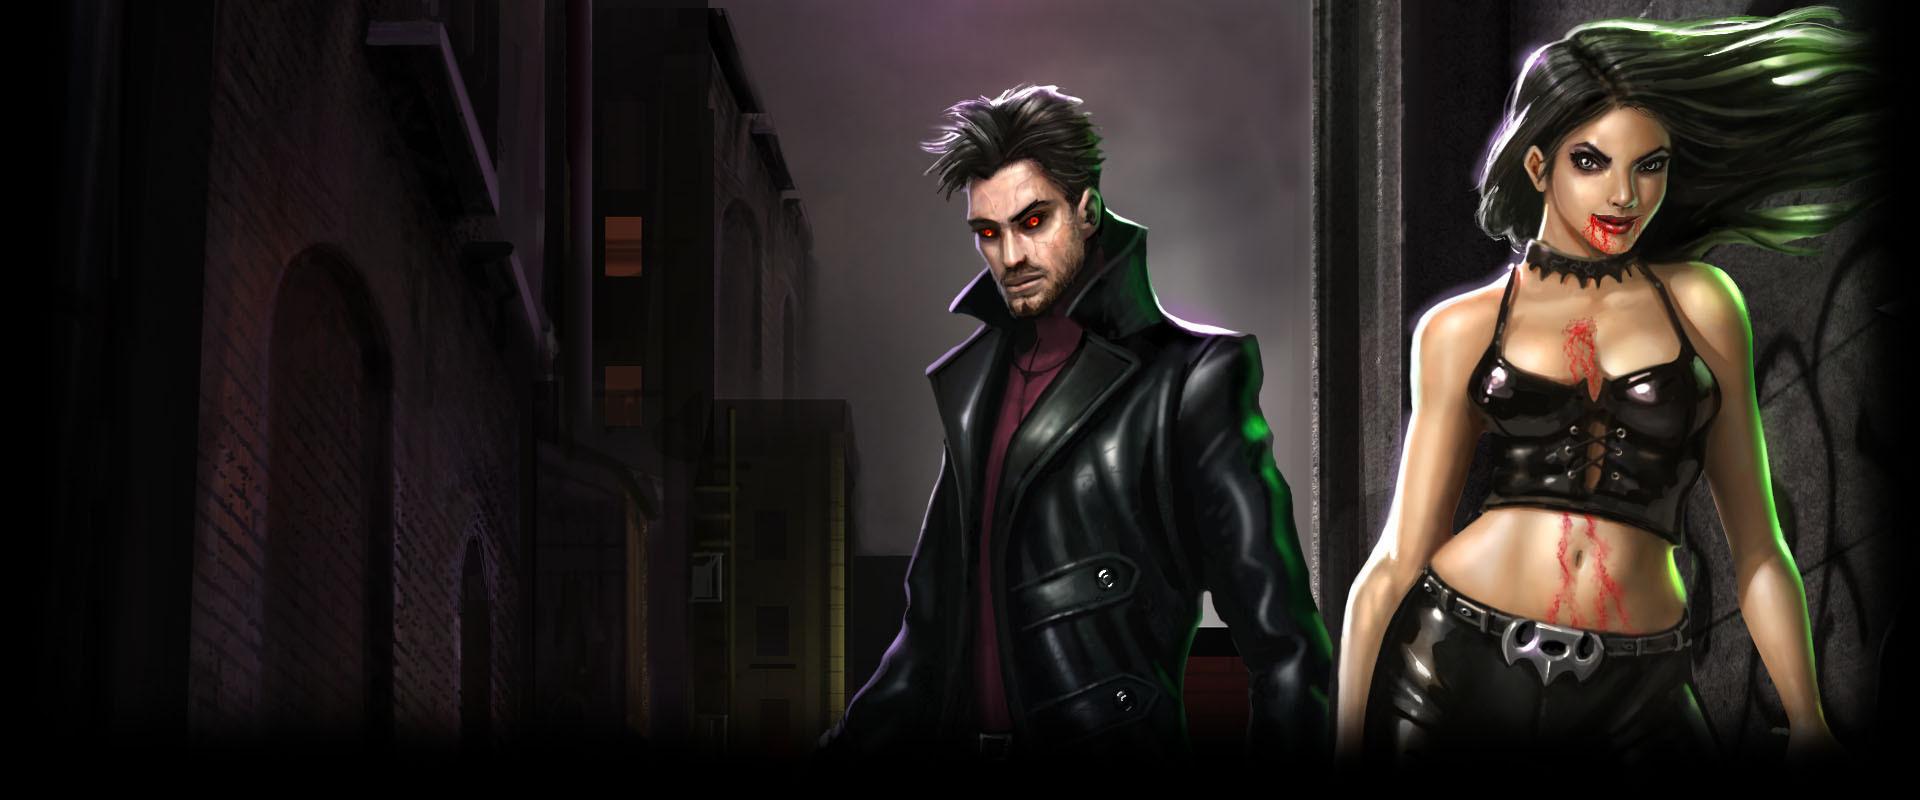 3 BloodLust Shadowhunter HD Wallpapers | Backgrounds